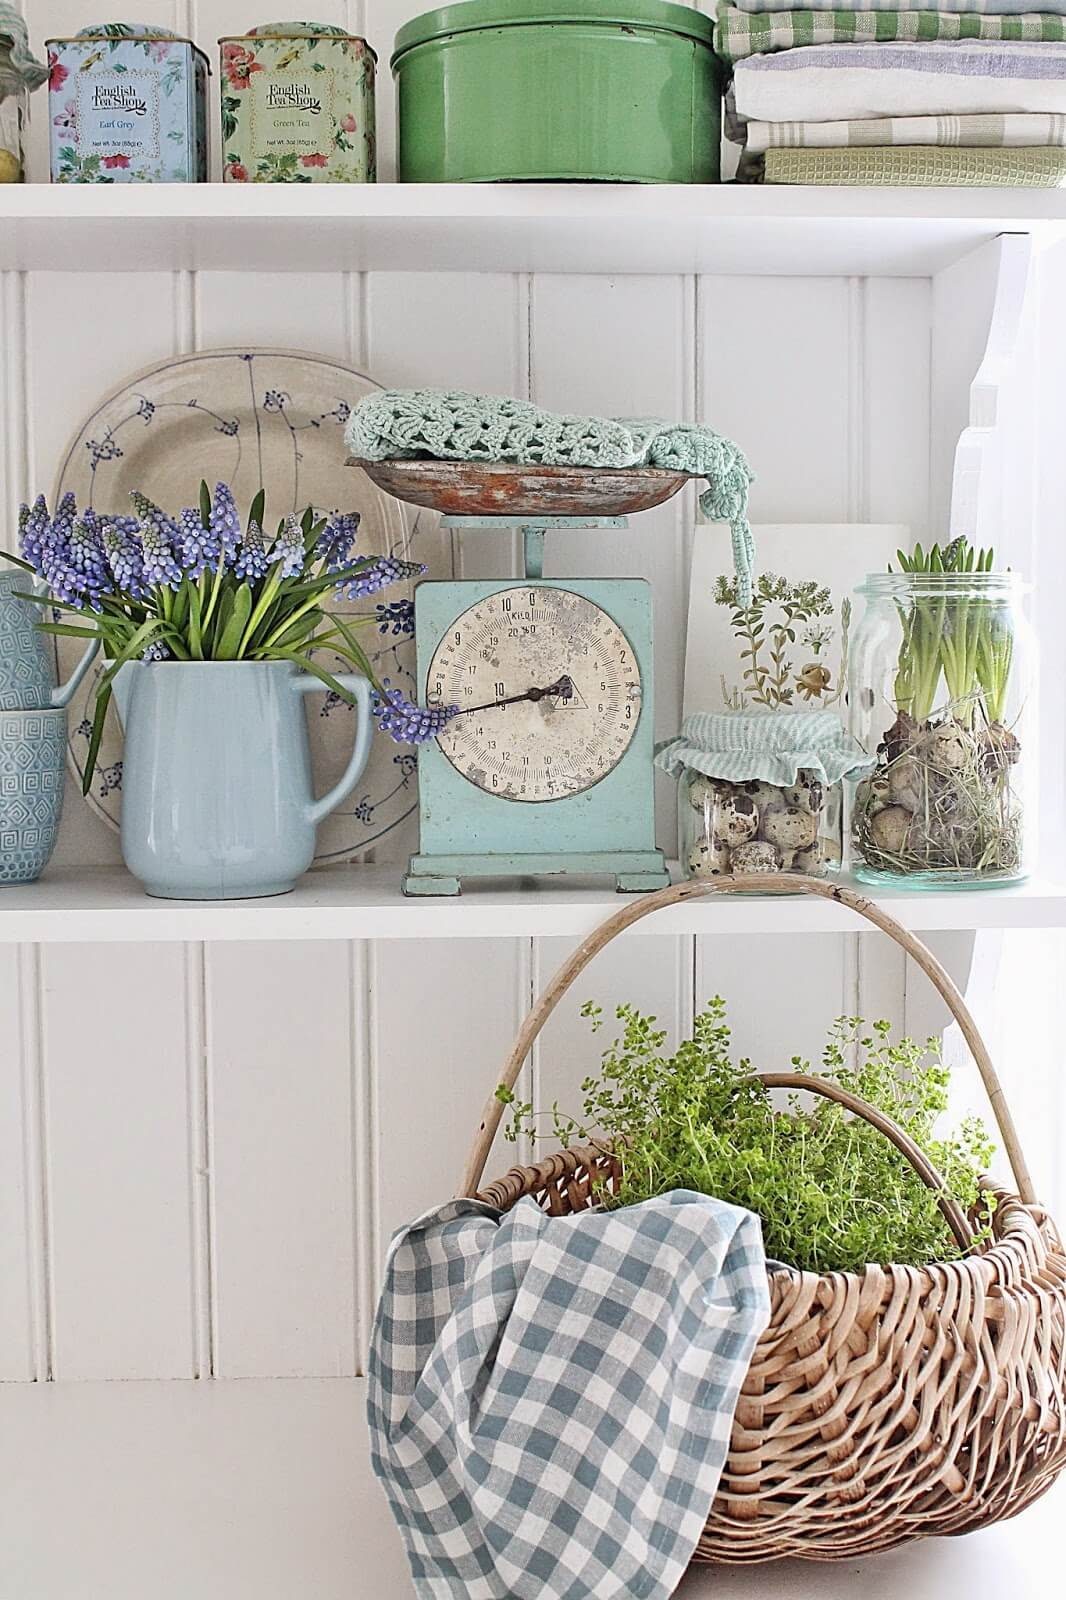 Large Woven Basket with Herbs